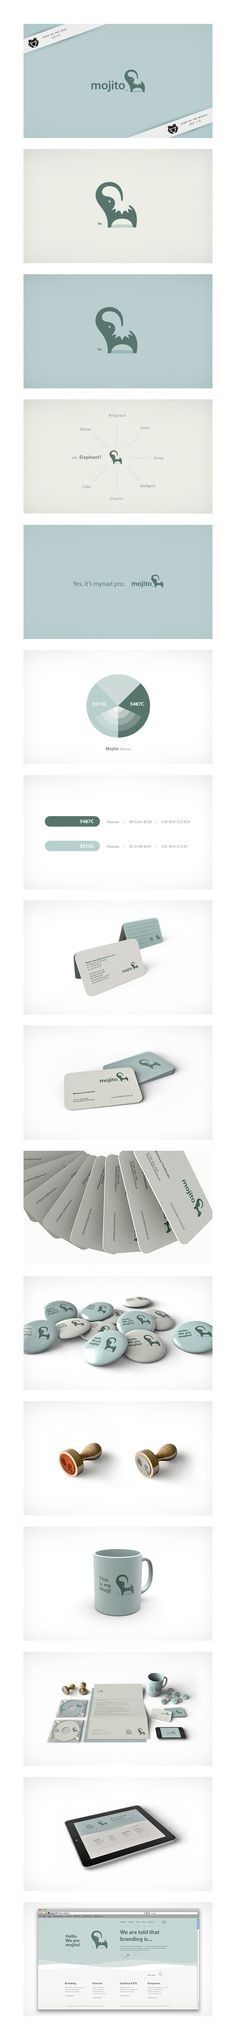 mojito agency corporate identity